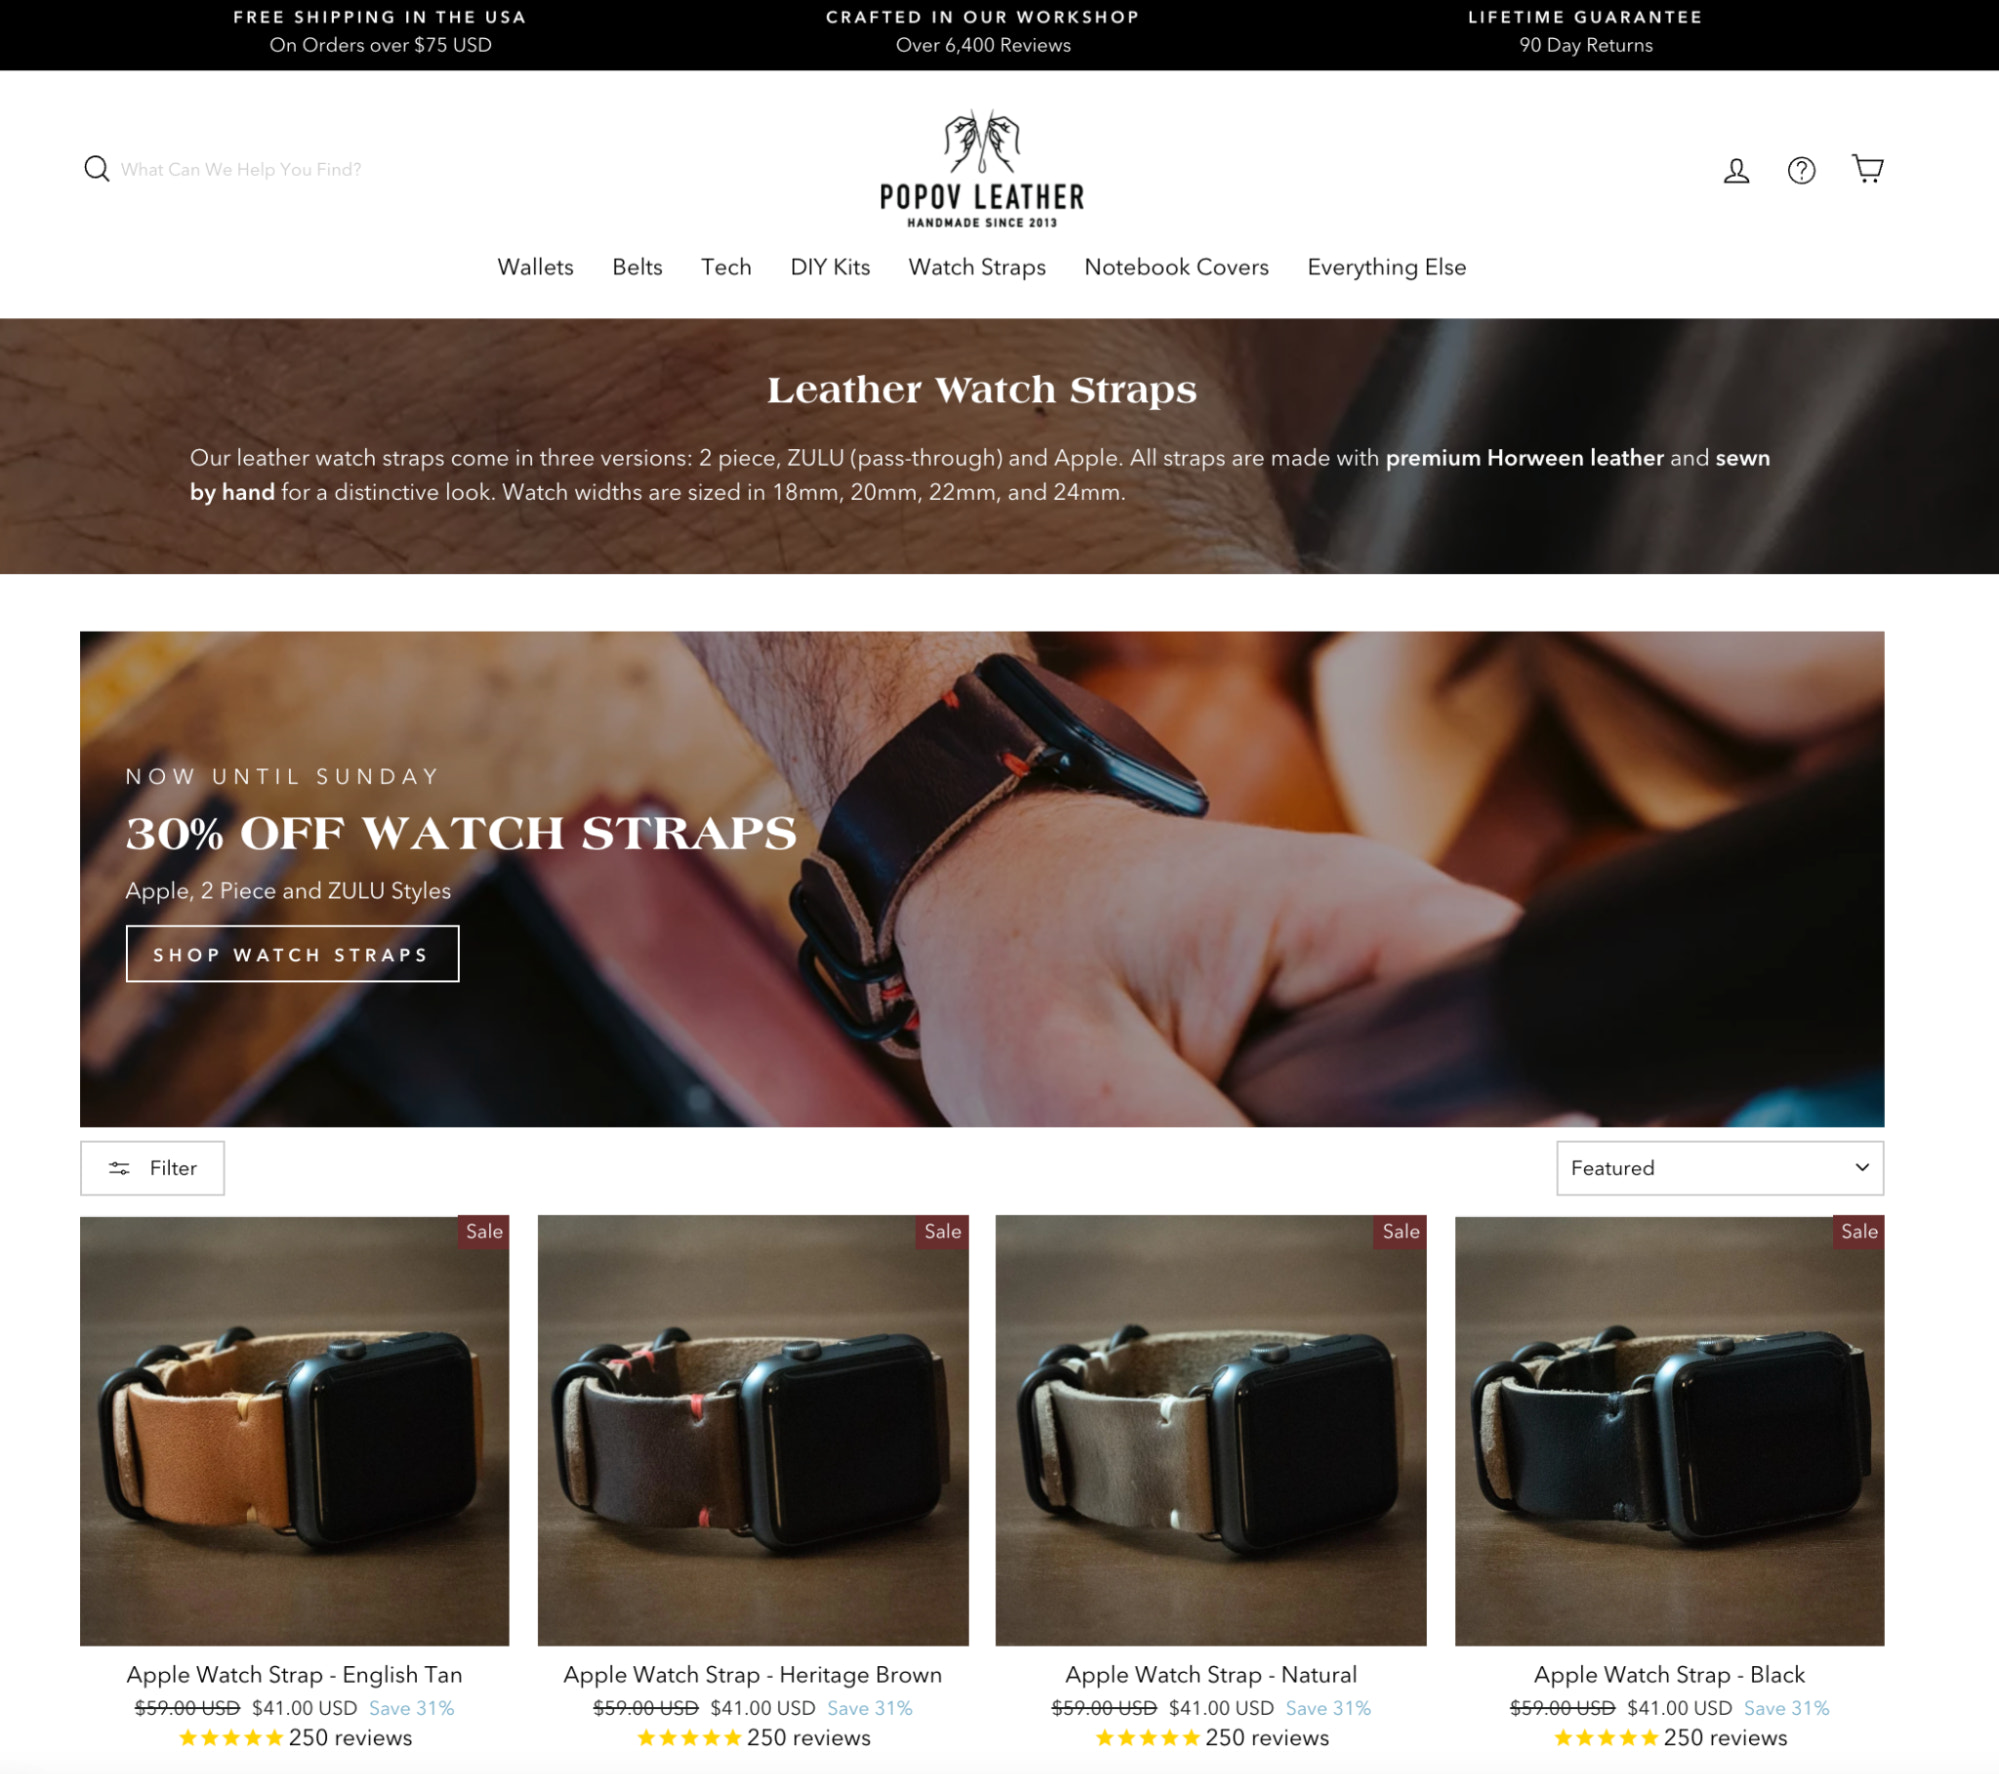 Popov Leather swapped its Etsy store for Shopify to sell its custom products.